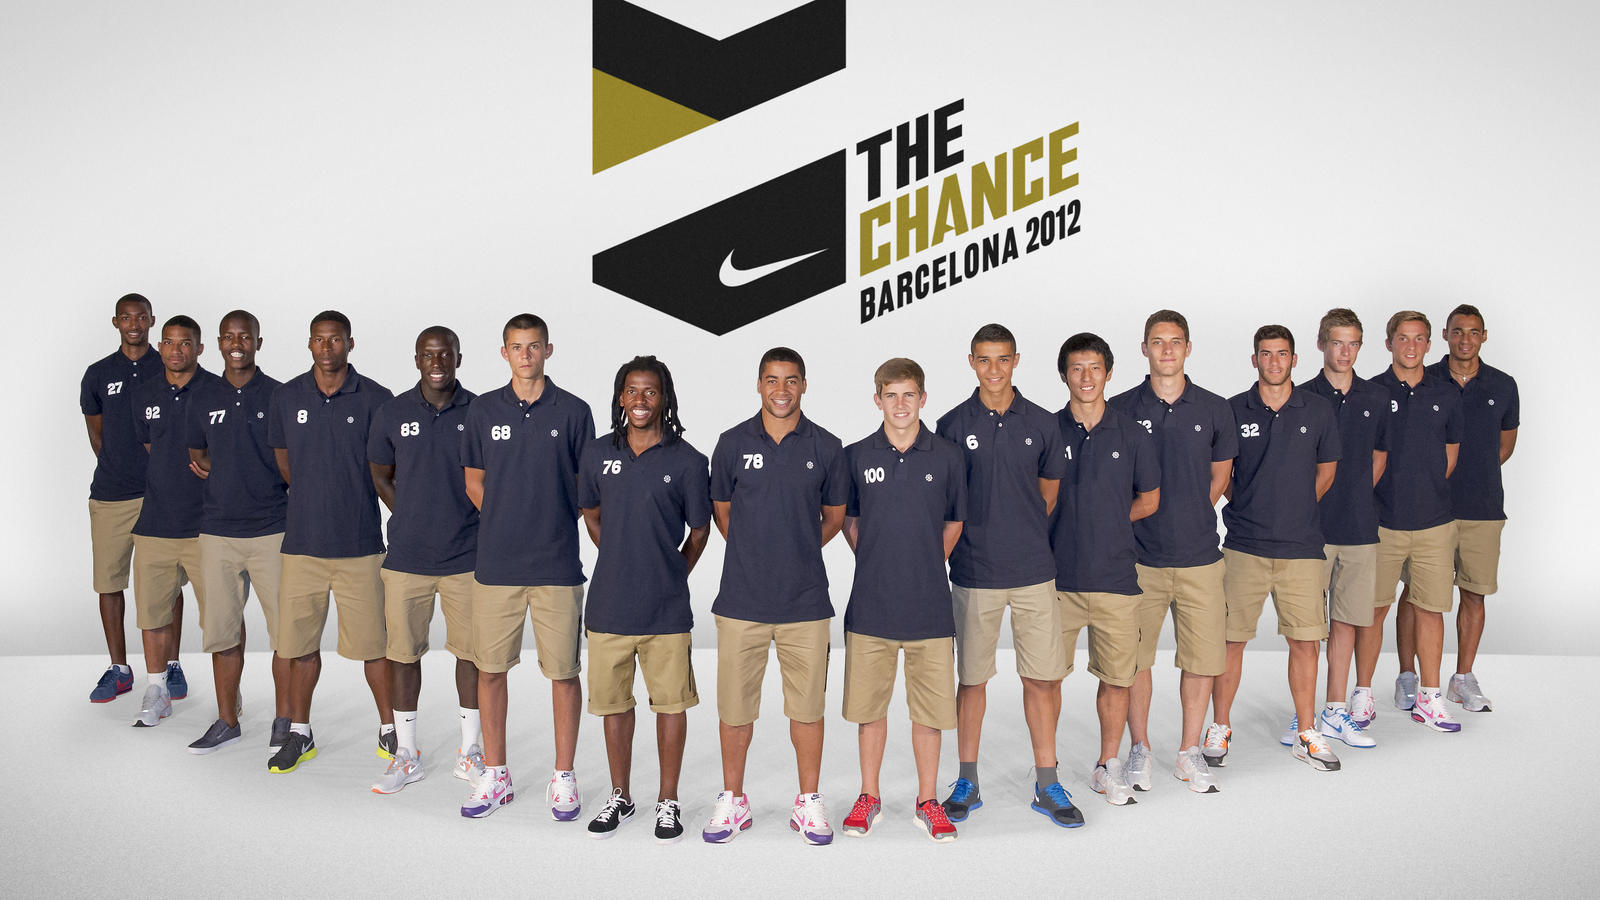 traductor persecucion Petrificar  Winners of the Chance 2012 announced in Barcelona - Nike News